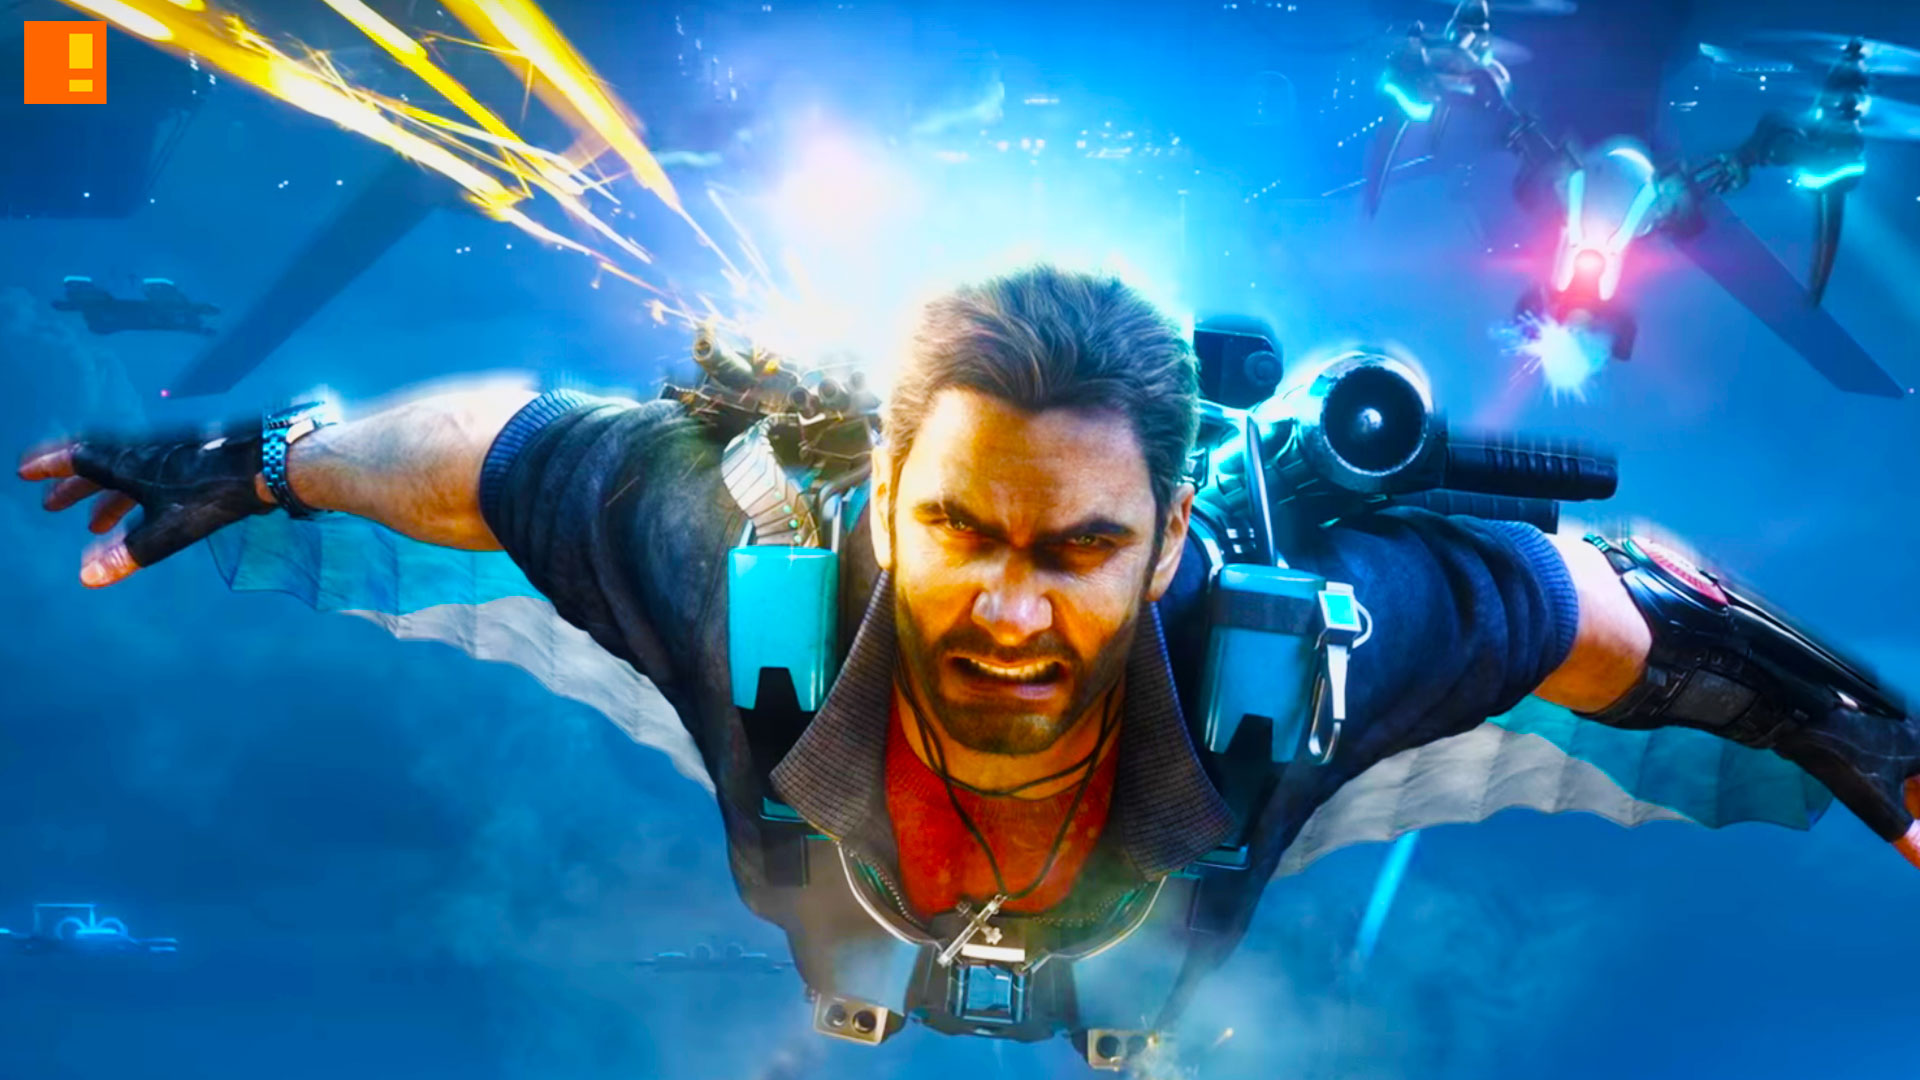 just cause 3 sky fortress. the action pixel. @theactionpixel